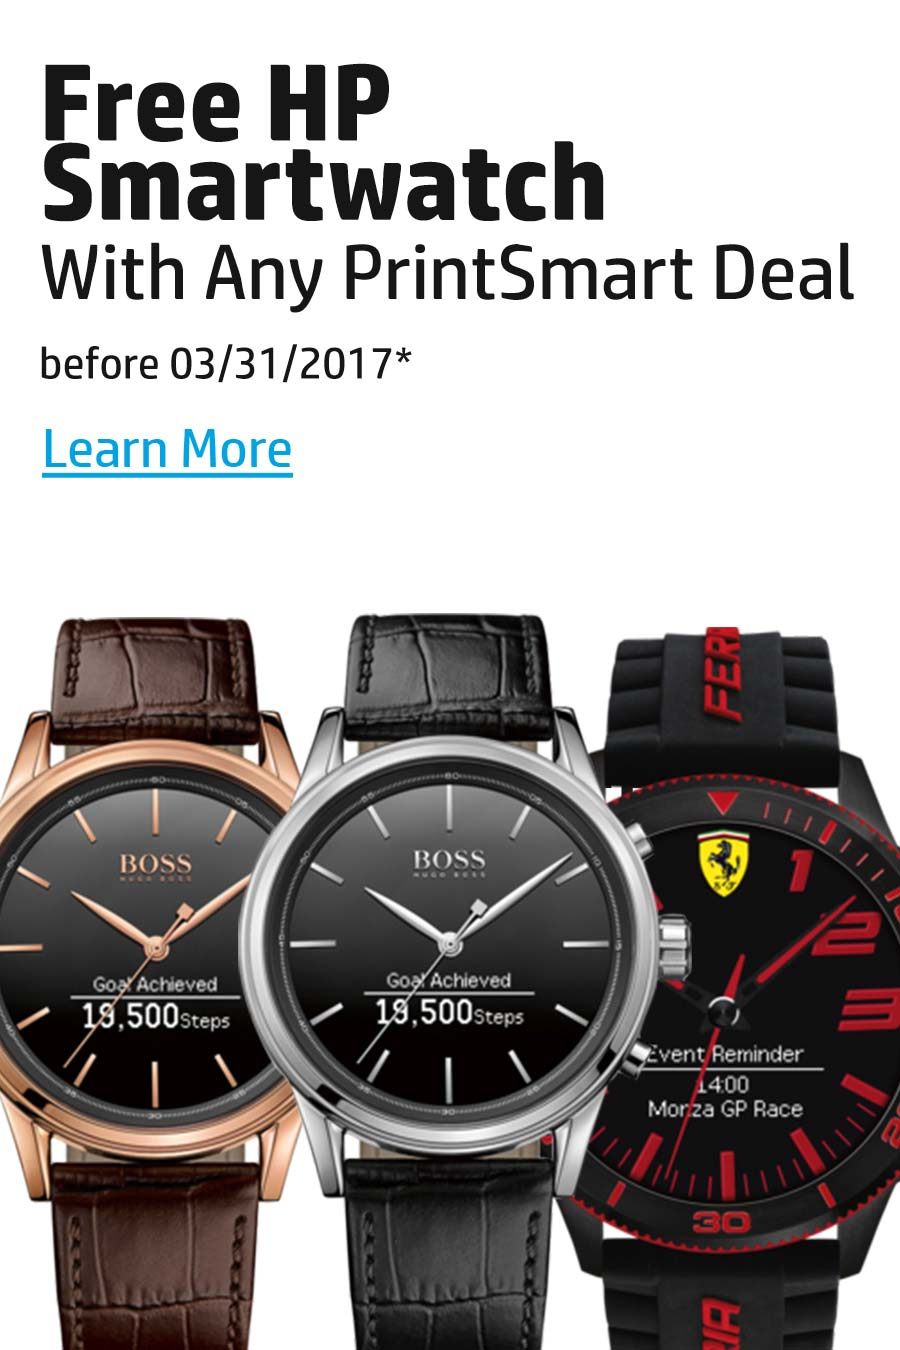 Free HP Smartwatch with PrintSmart